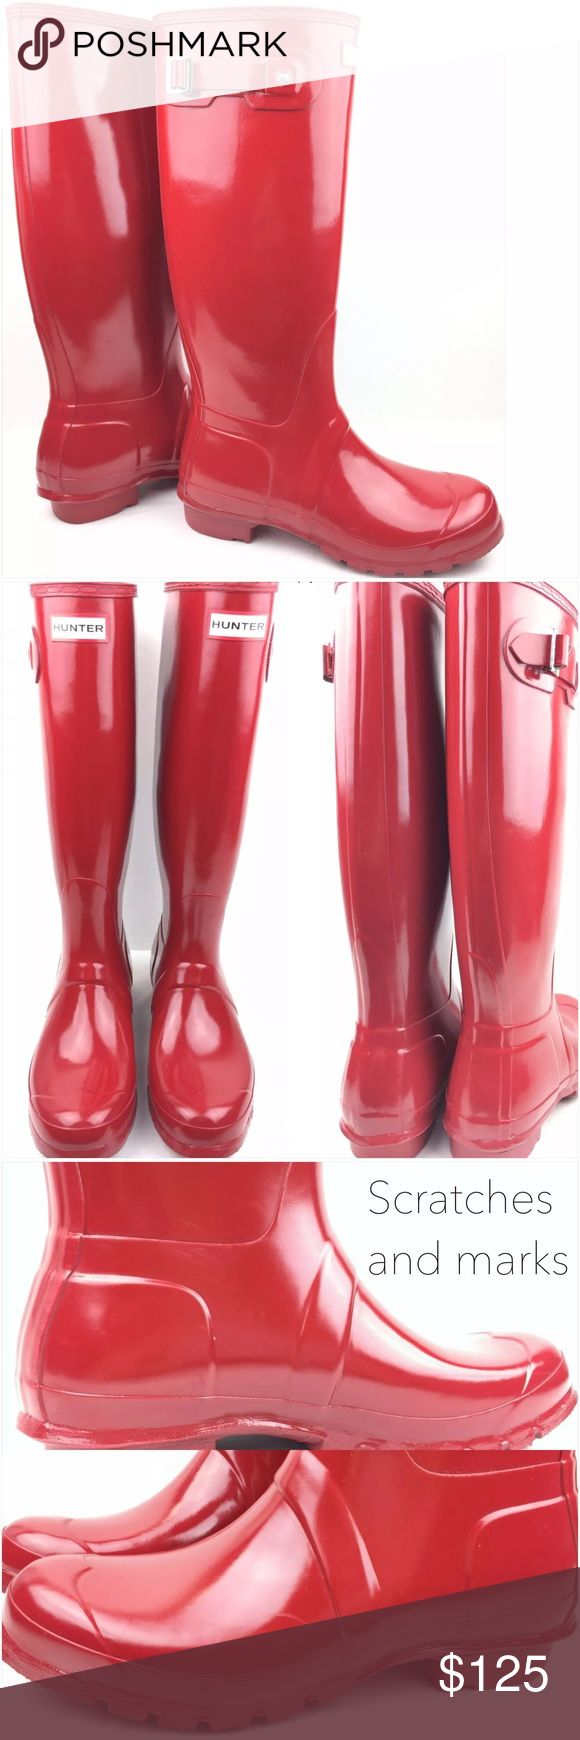 Hunter Military Red Original Gloss Tall Rain Boots Used | Boots have scratches, scuffs, marks, and minor stains. Otherwise, boots are in good condition. | Original box not included | Size: 9 US Woman's Hunter Boots Shoes Winter & Rain Boots